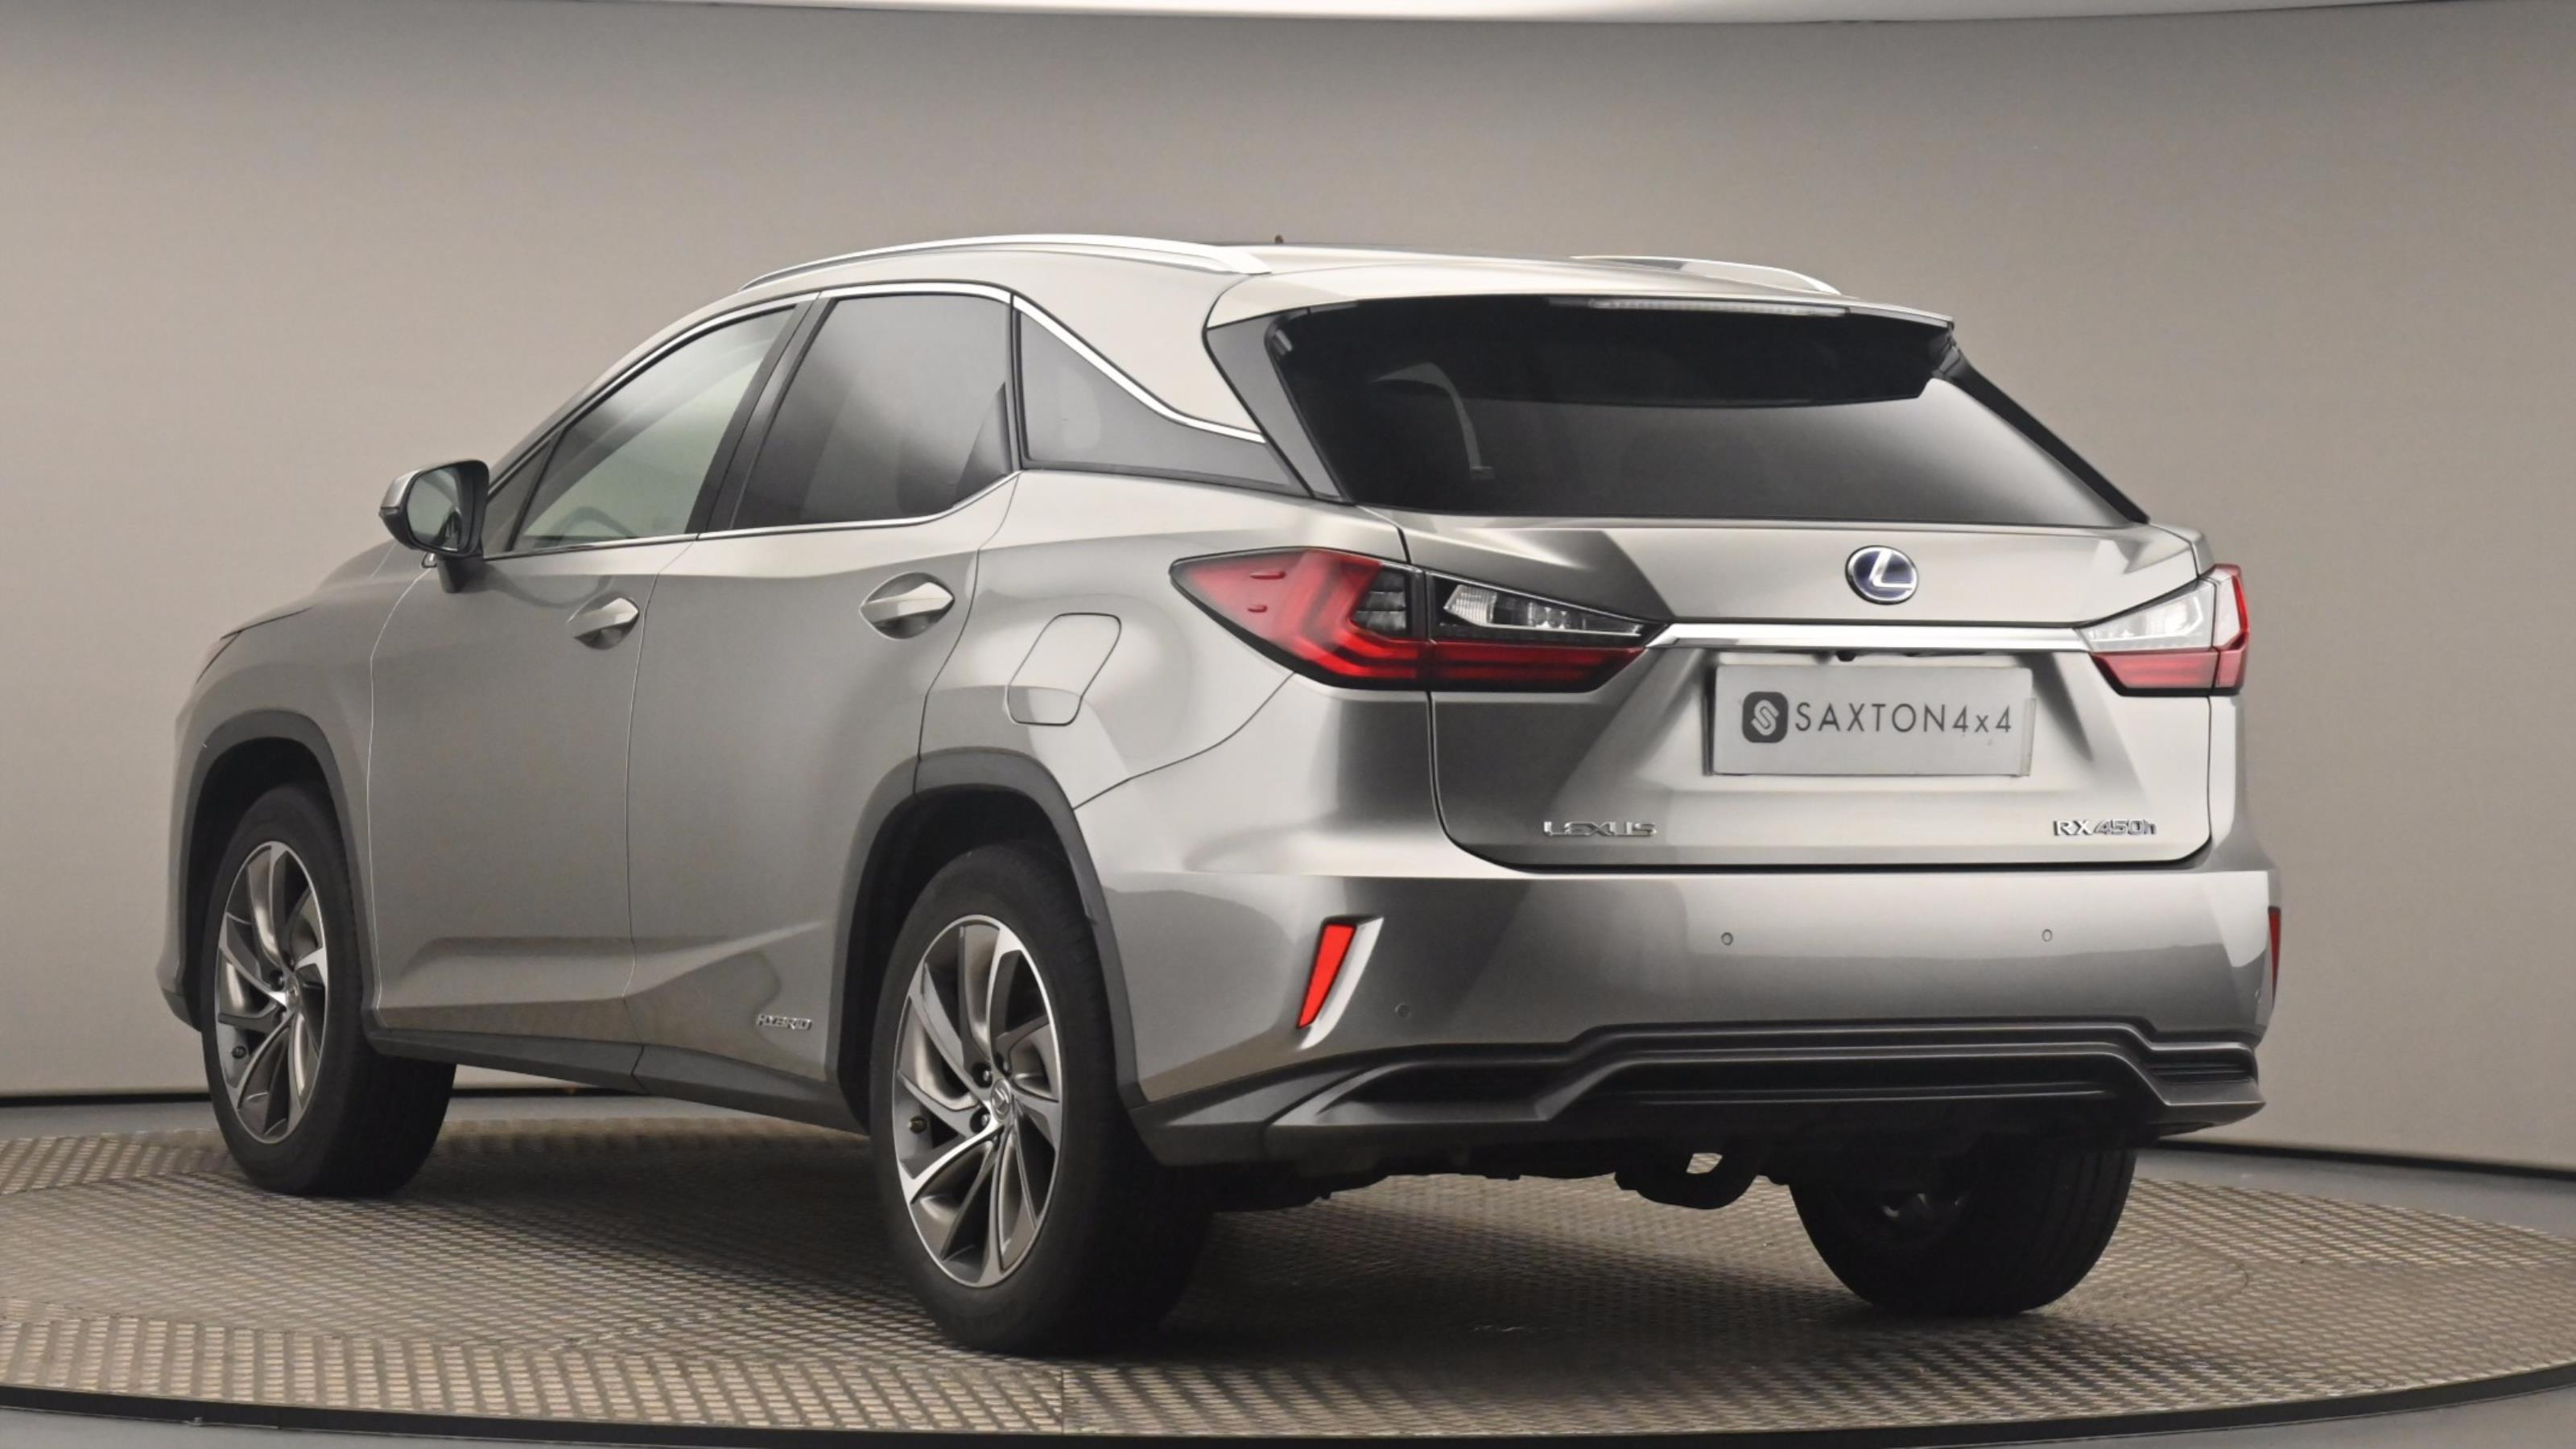 Used 2016 Lexus RX 450h 3.5 Premier 5dr CVT [Pan roof] SILVER at Saxton4x4